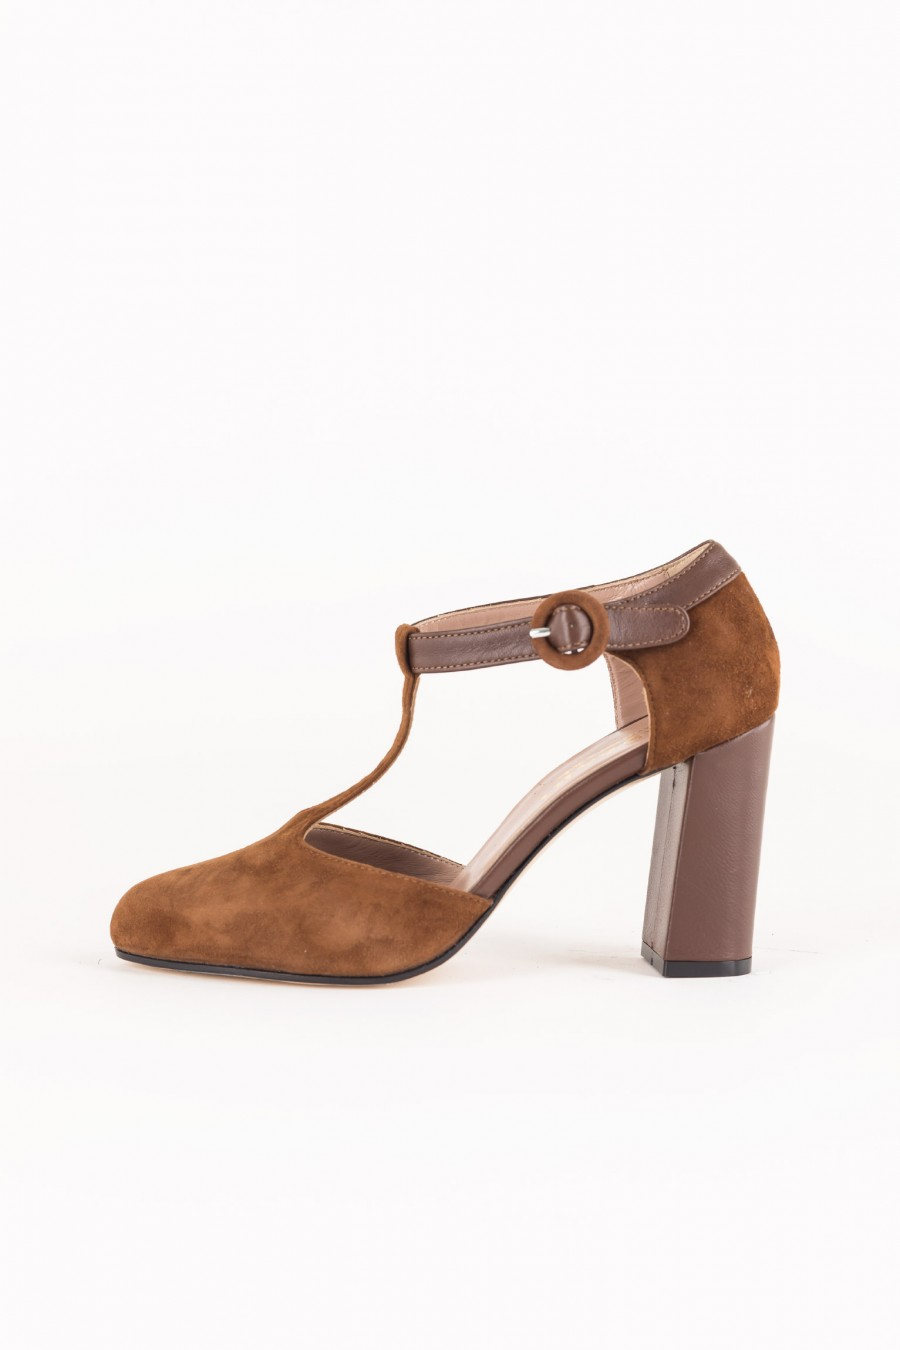 Suede heels with strap